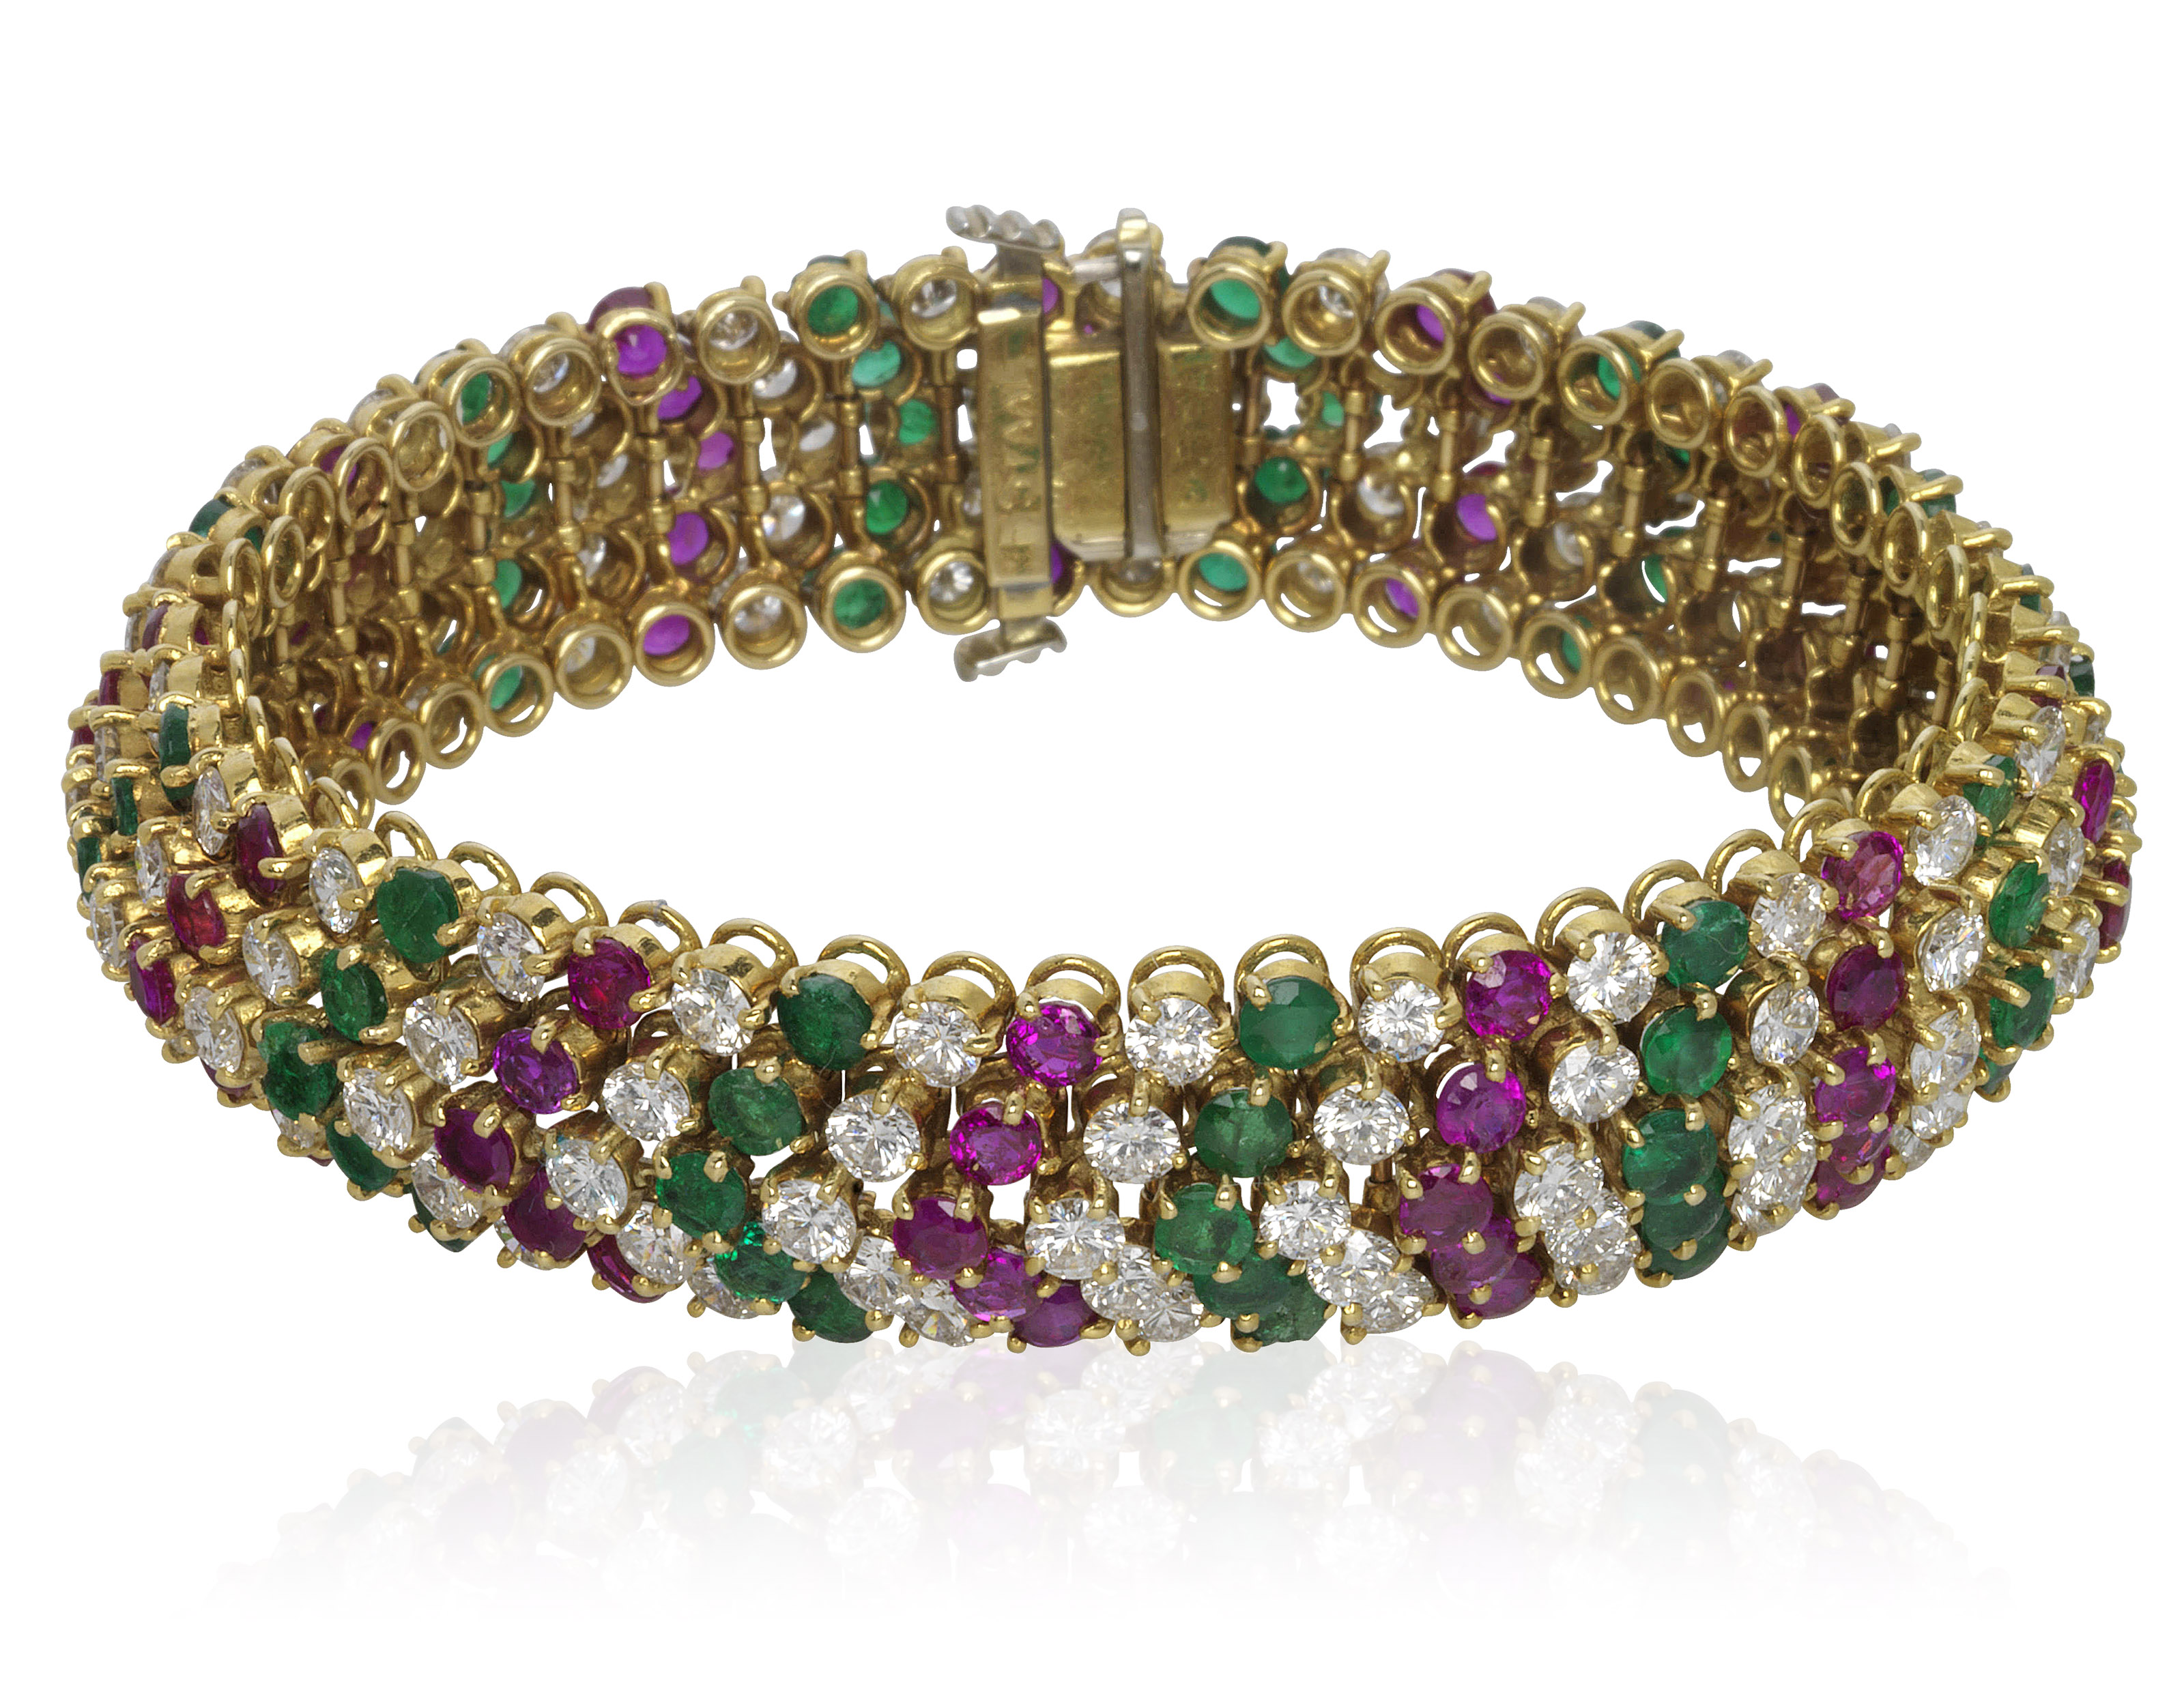 heritage bracelet emerald collection golden filigree wrap products cajun necklace